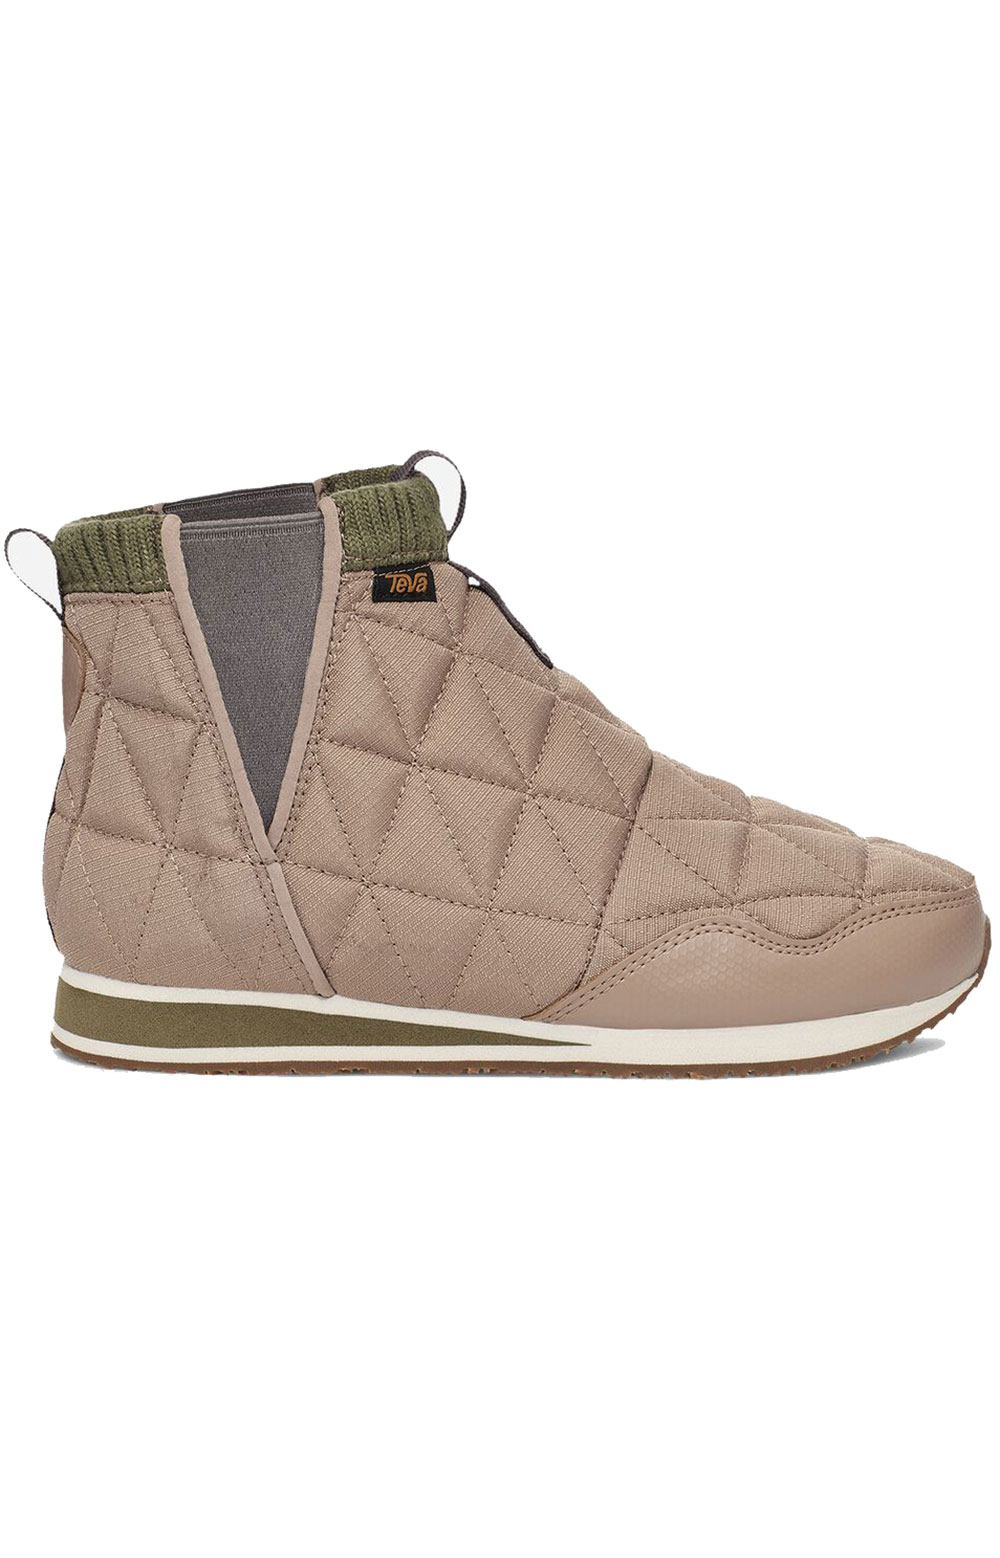 (1123431) ReEMBER Mid Shoes - Macaroon/Olive